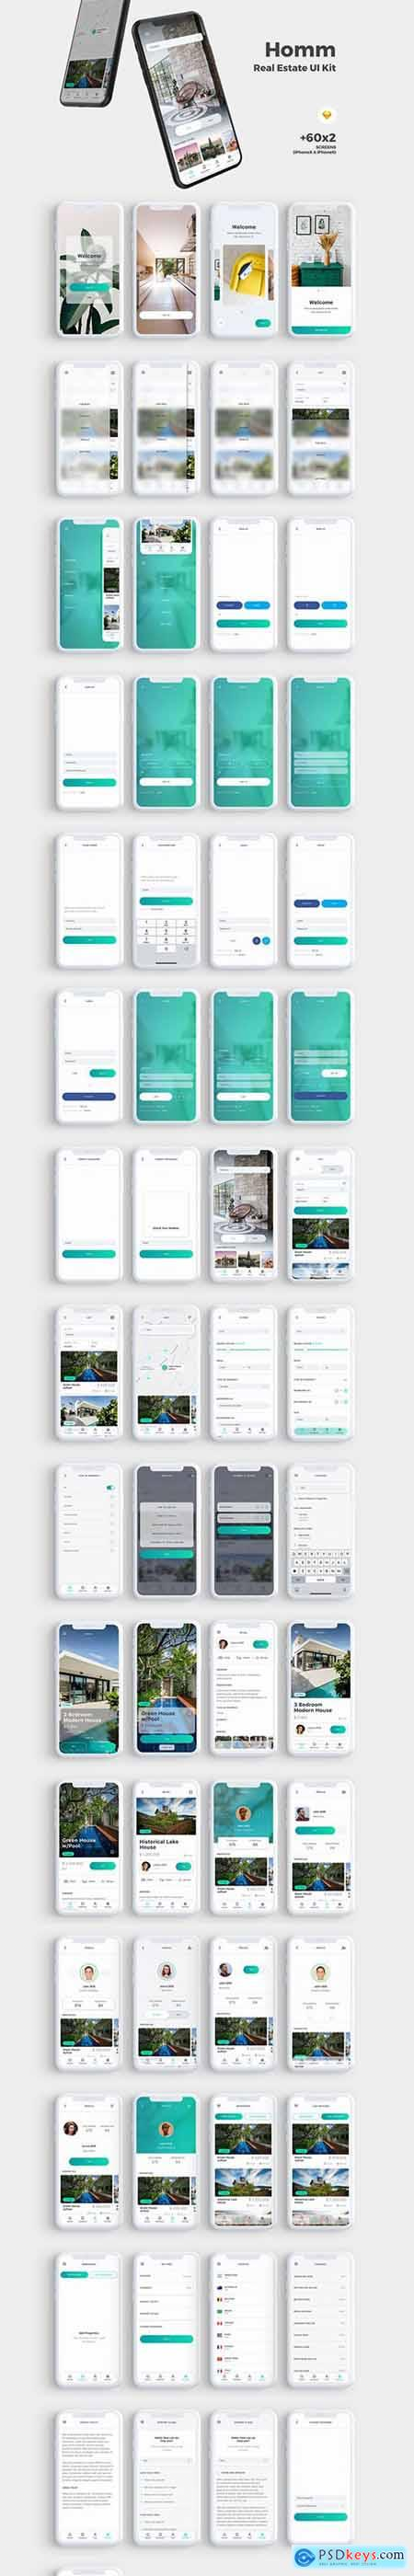 Homm Real Estate UI Kit